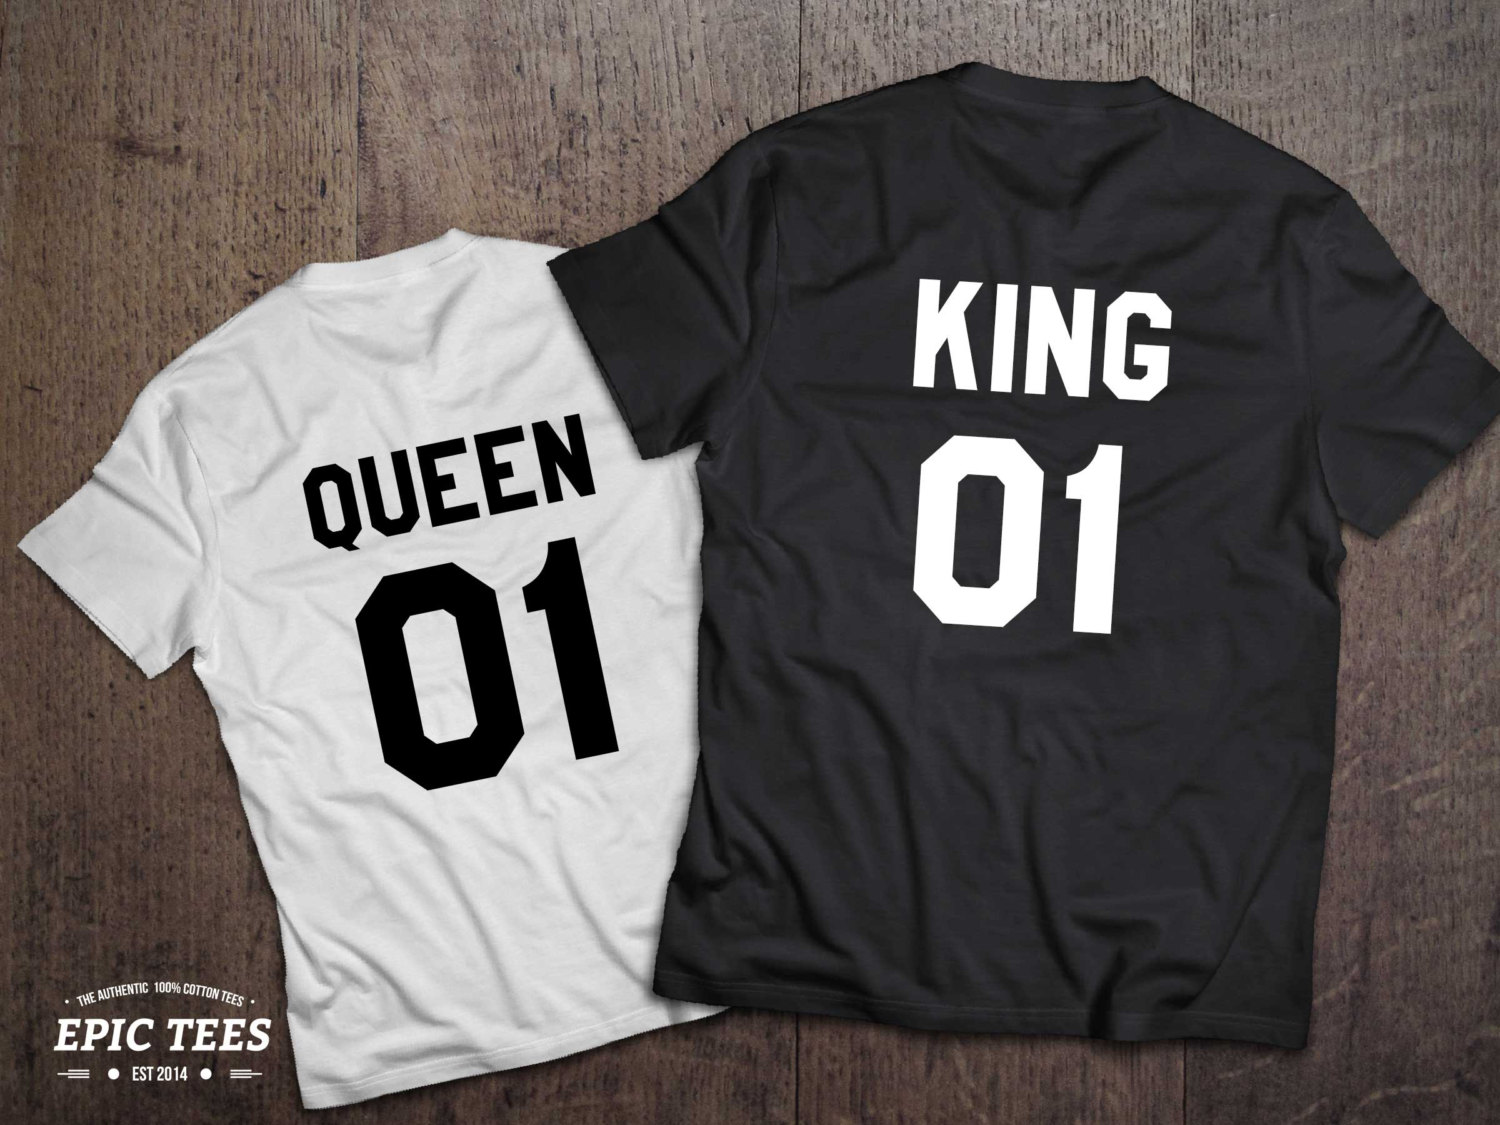 bb3a4b0fde King and Queen 01 Couples T-shirt Set, King and Queen 01 Couples Shirt Set,  ...